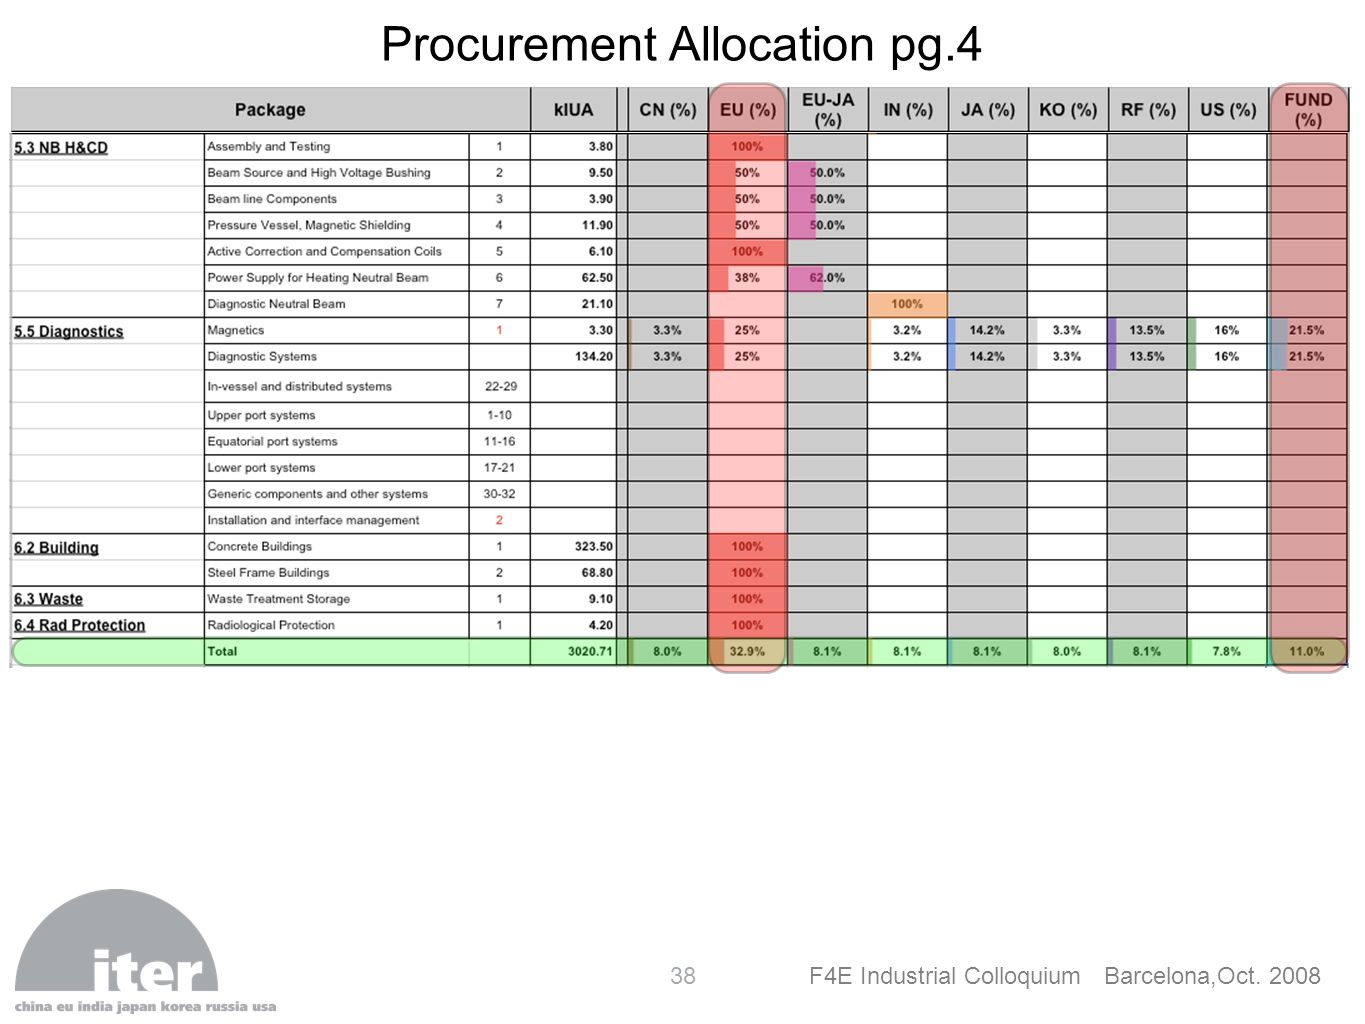 Procurement Allocation pg.4